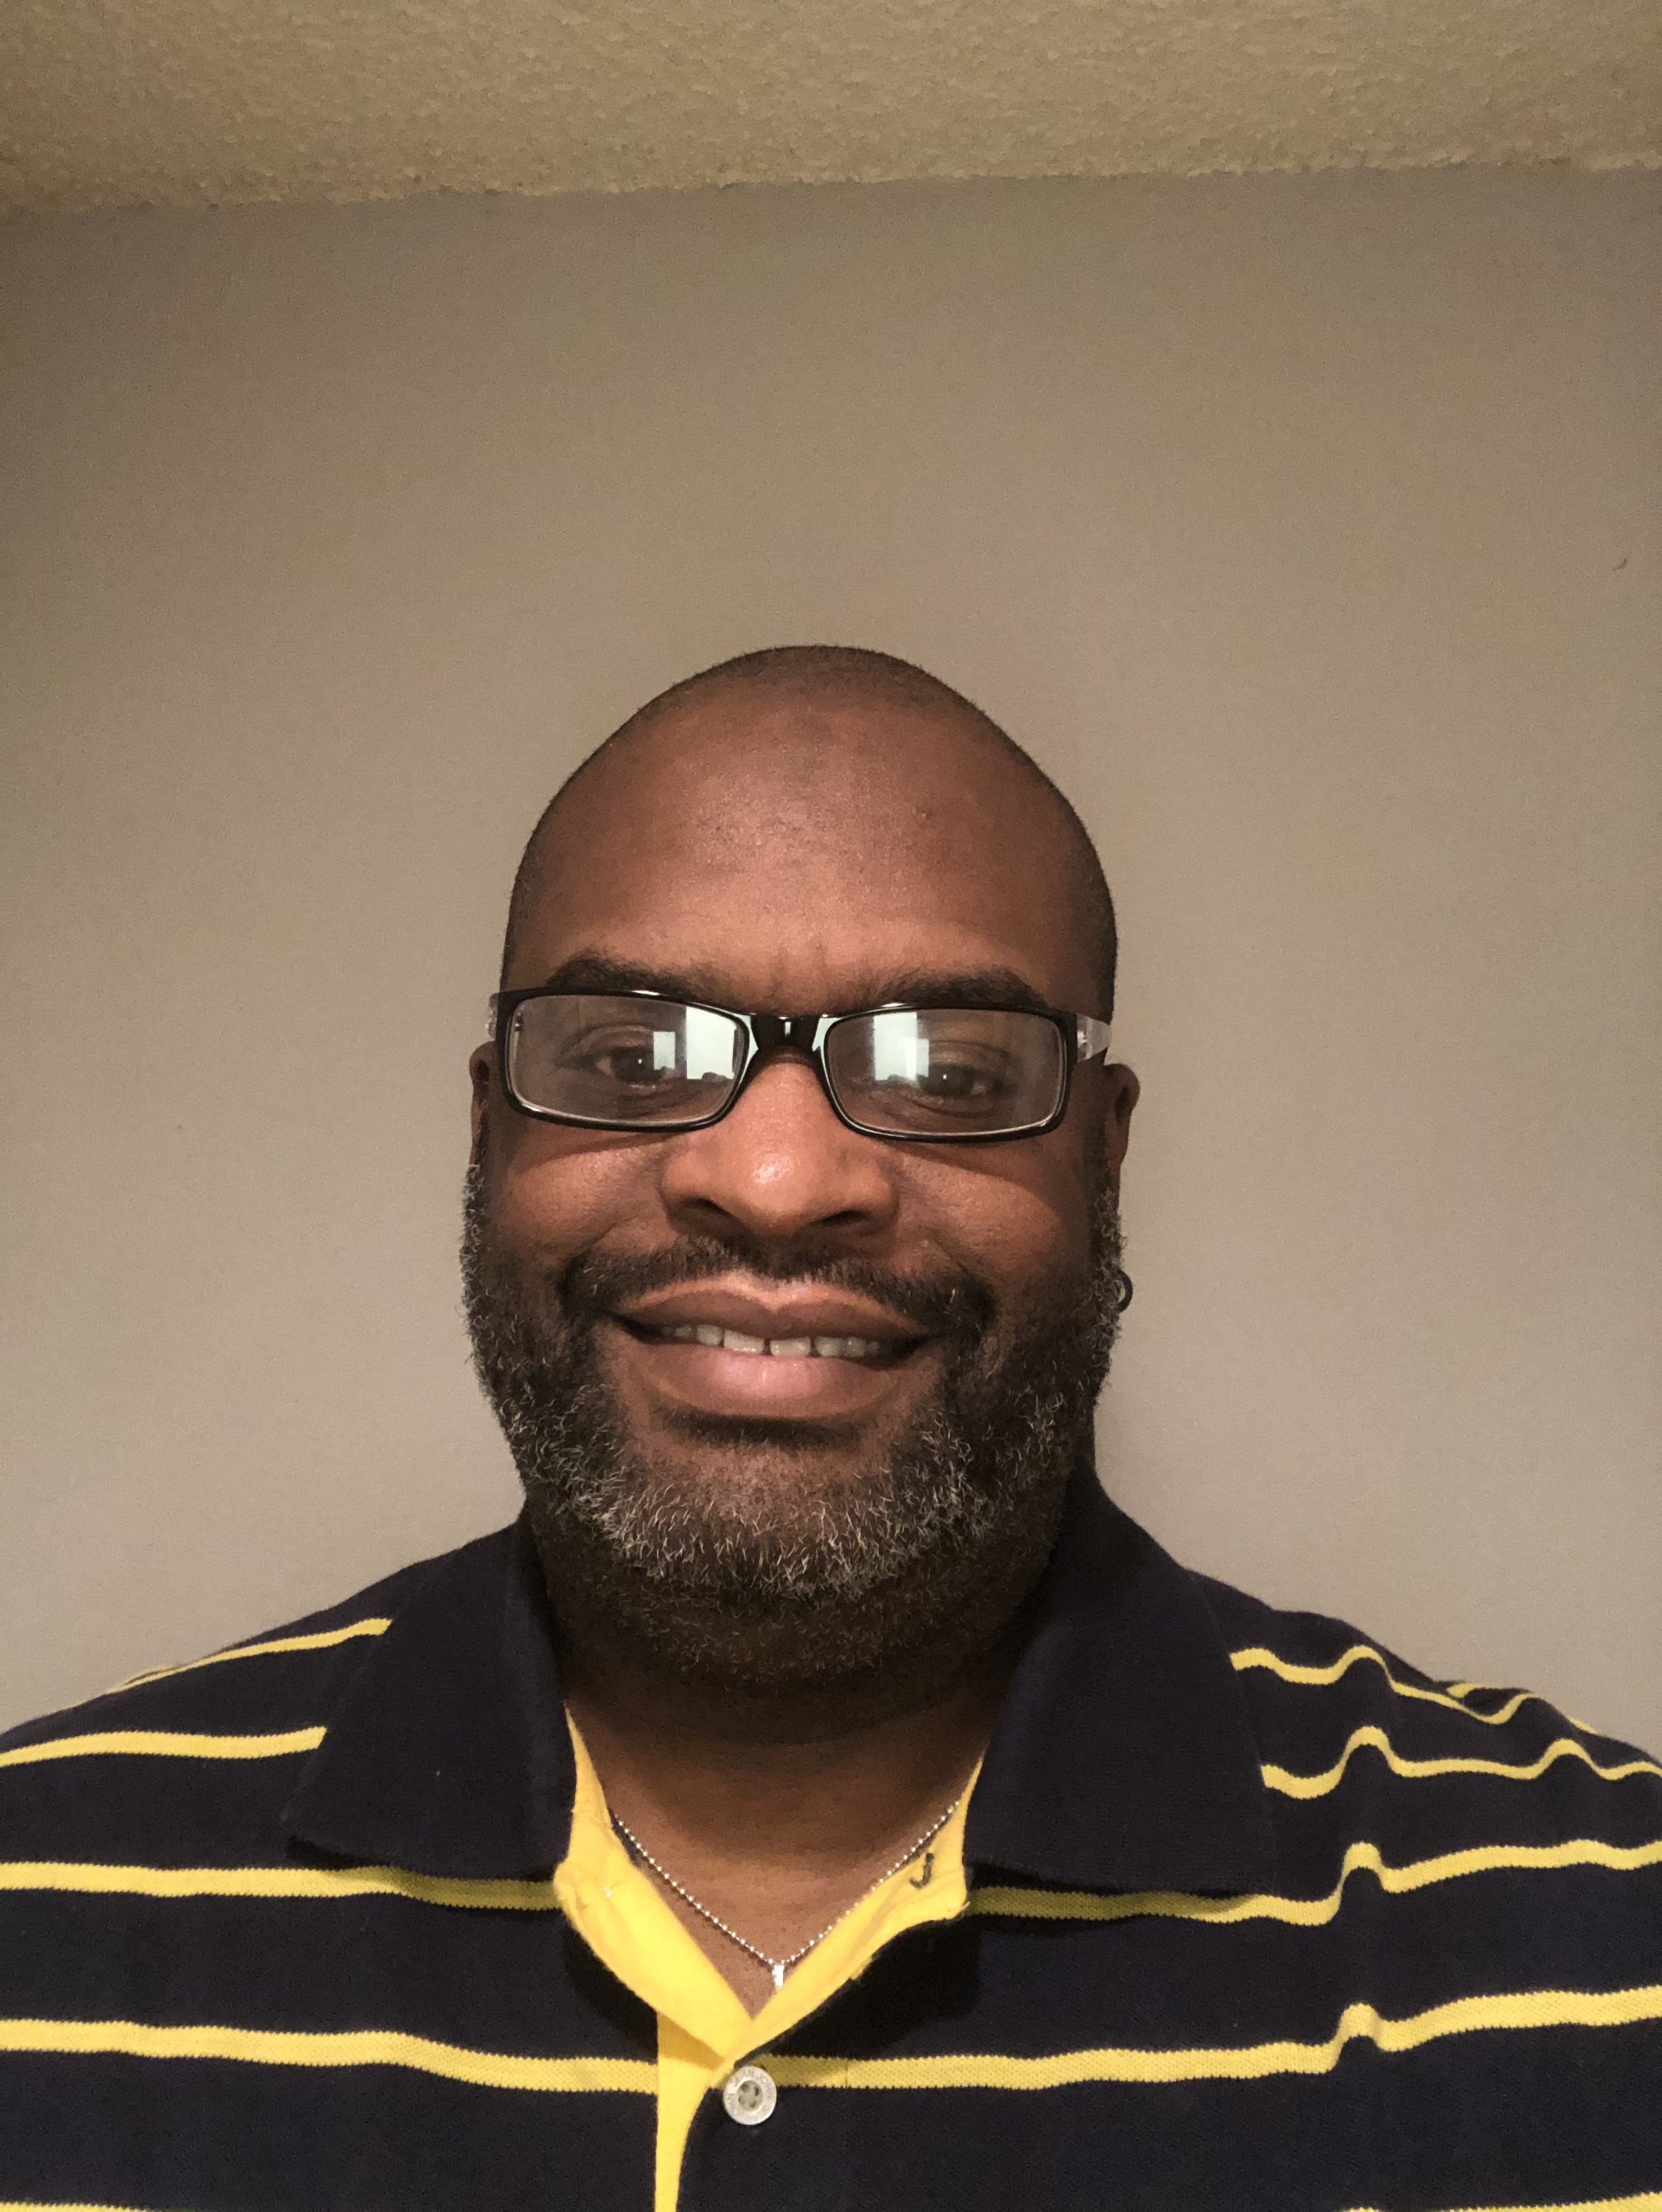 Closeup picture of black man smiling wtih glasses and black and yellow striped polo shirt